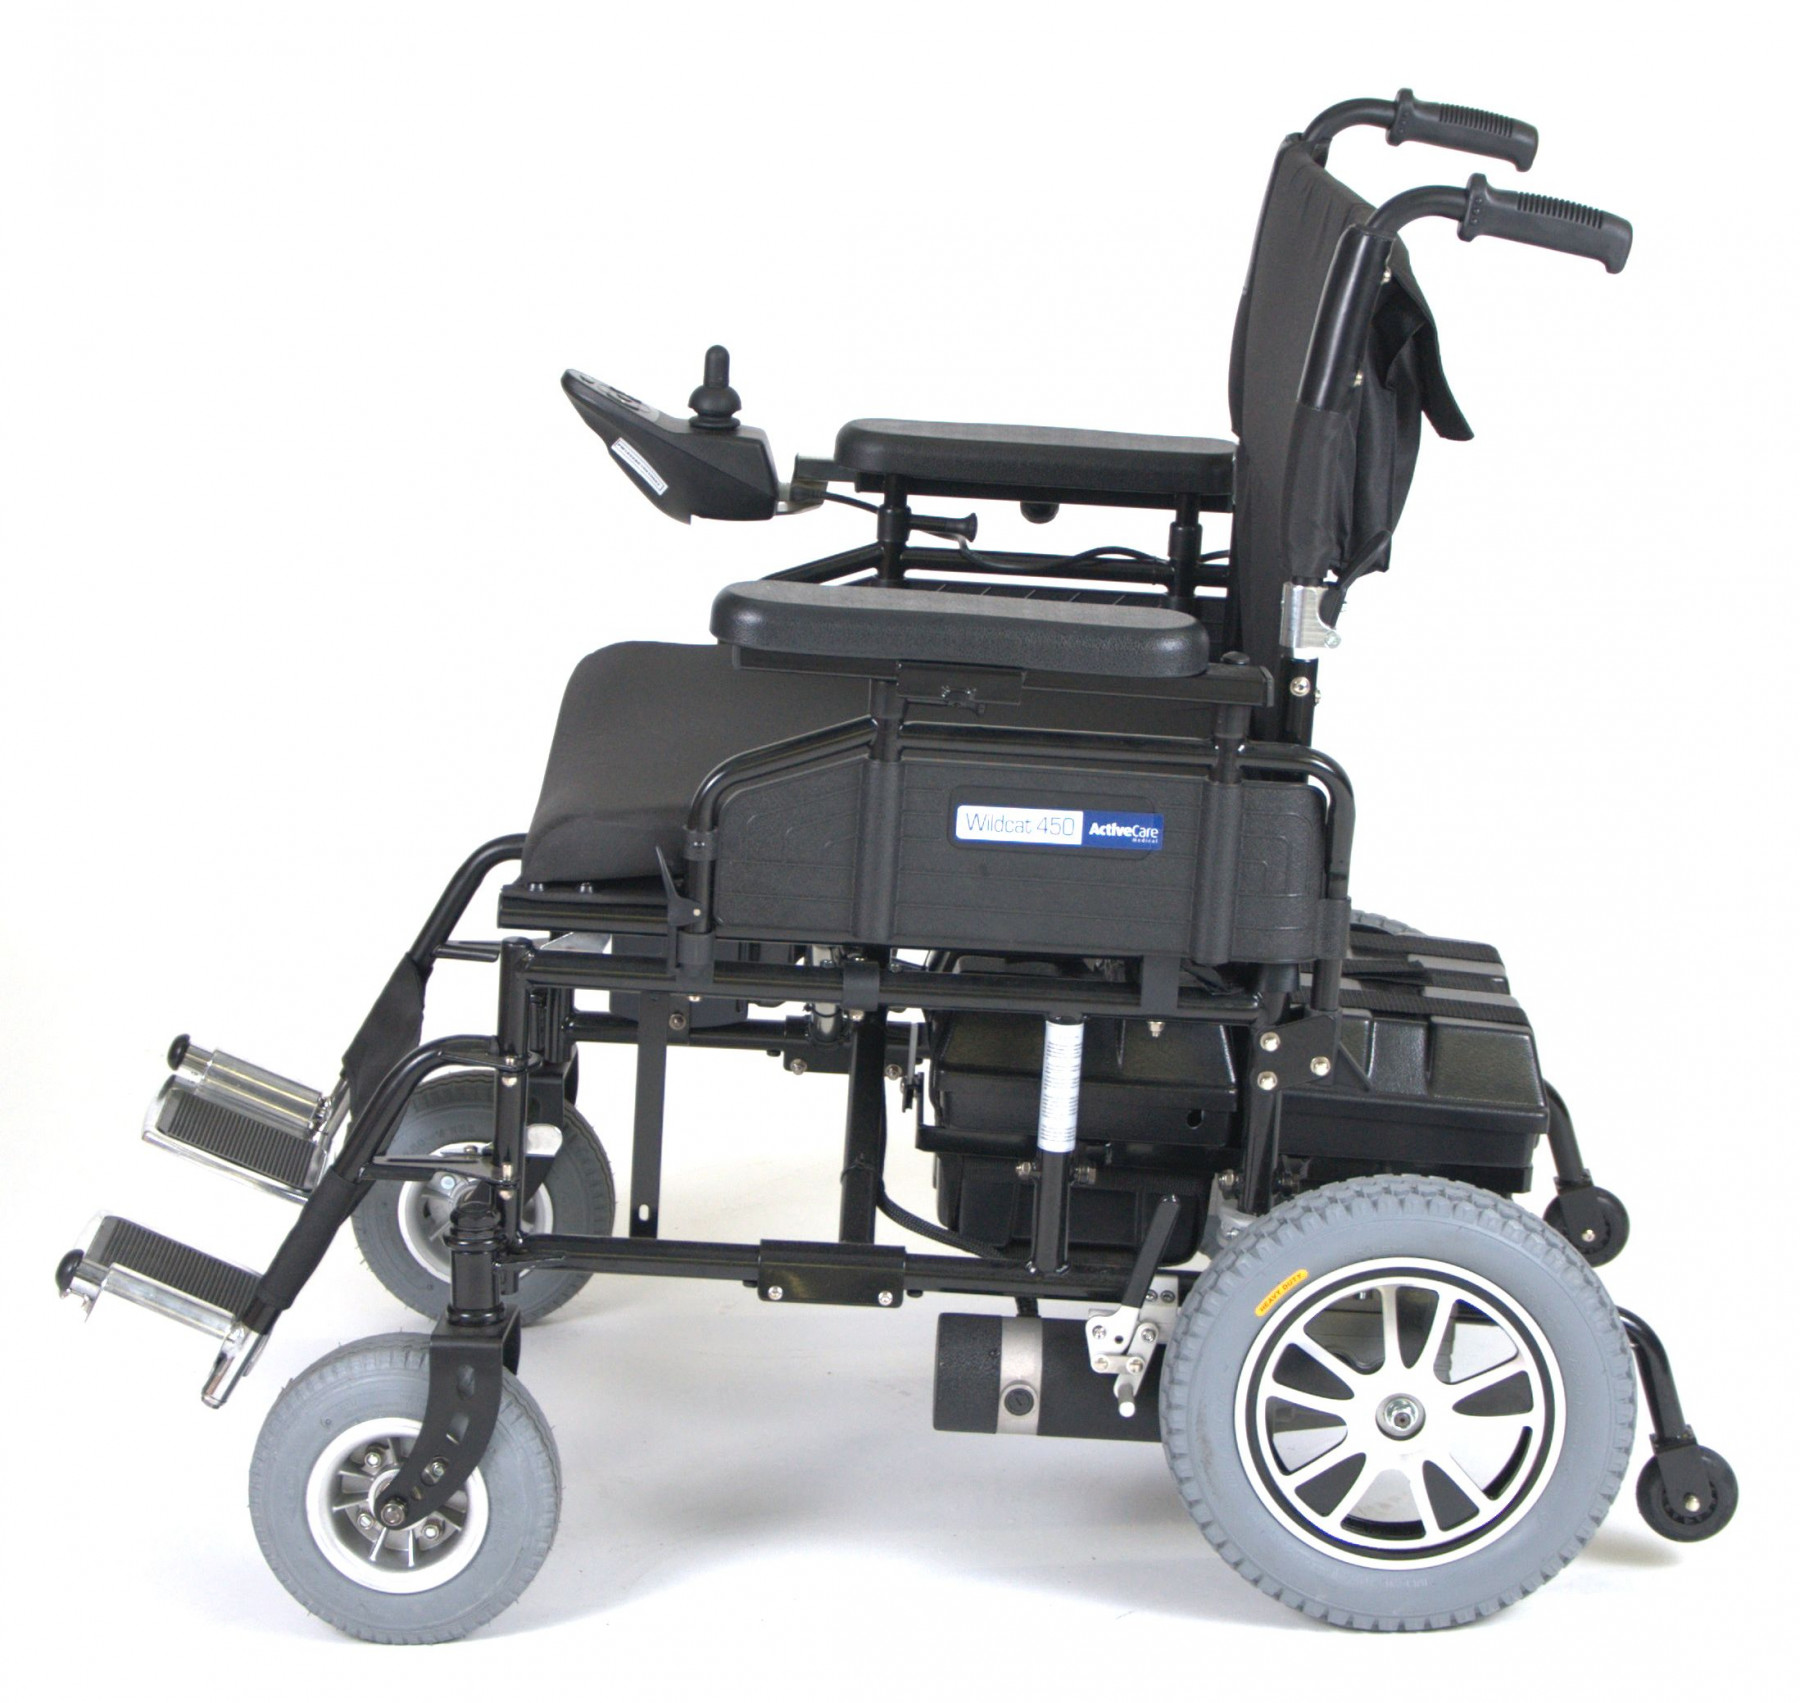 power chairs for sale amazon kids table and wildcat 450 wheelchair at the lowest price